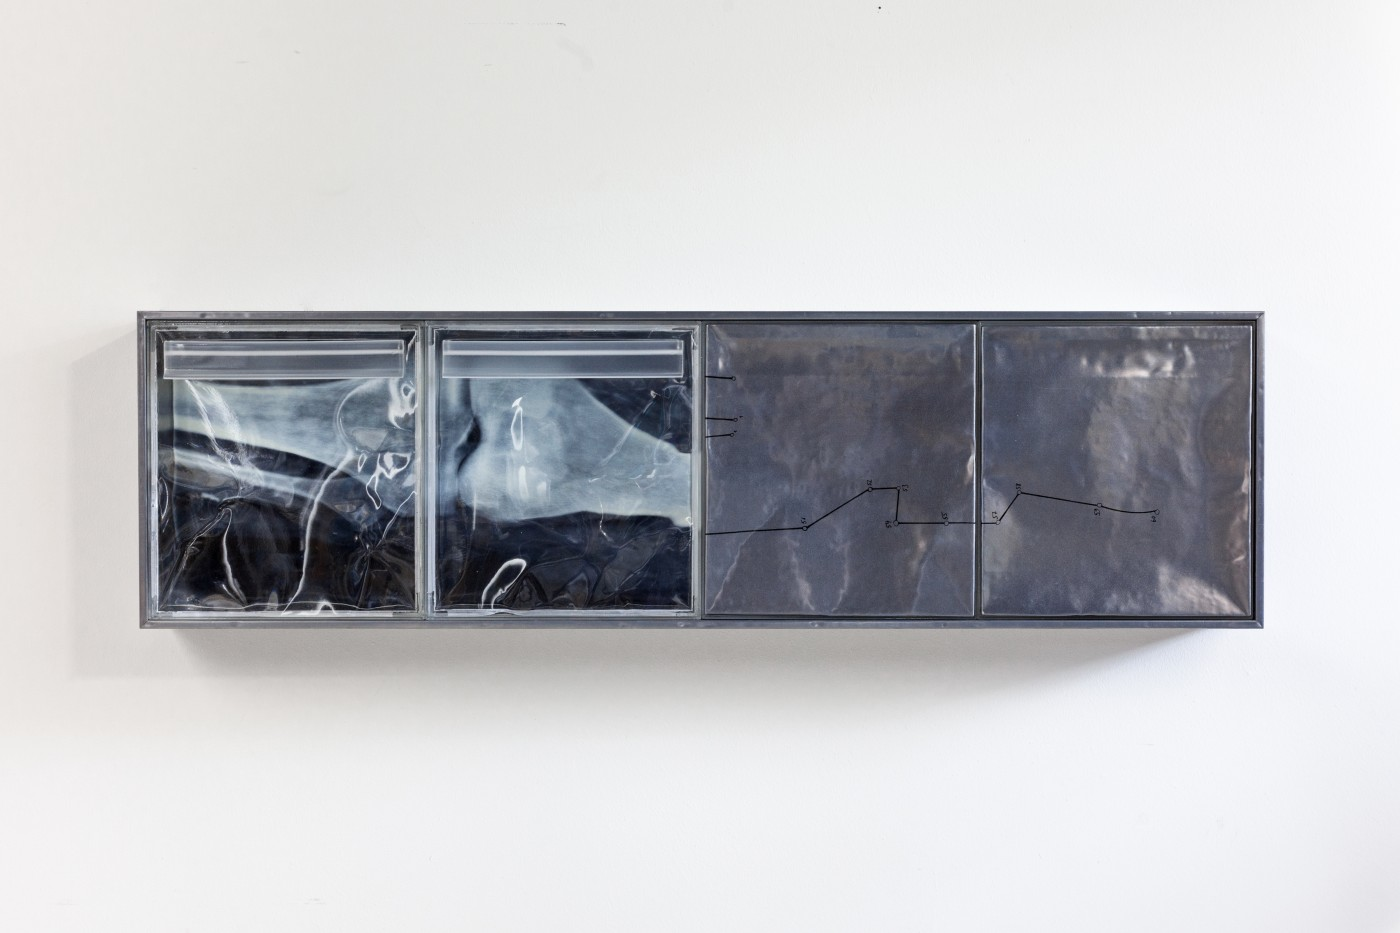 DEPOSIT  Deposits (central metropolis)</I>, 2015 Silkscreen on lead, inkjet print on acetate, UV resistant epoxy resin, aluminium panel 151 x 43 x 14 cm / 59.4 x 16.9 x 5.5 in